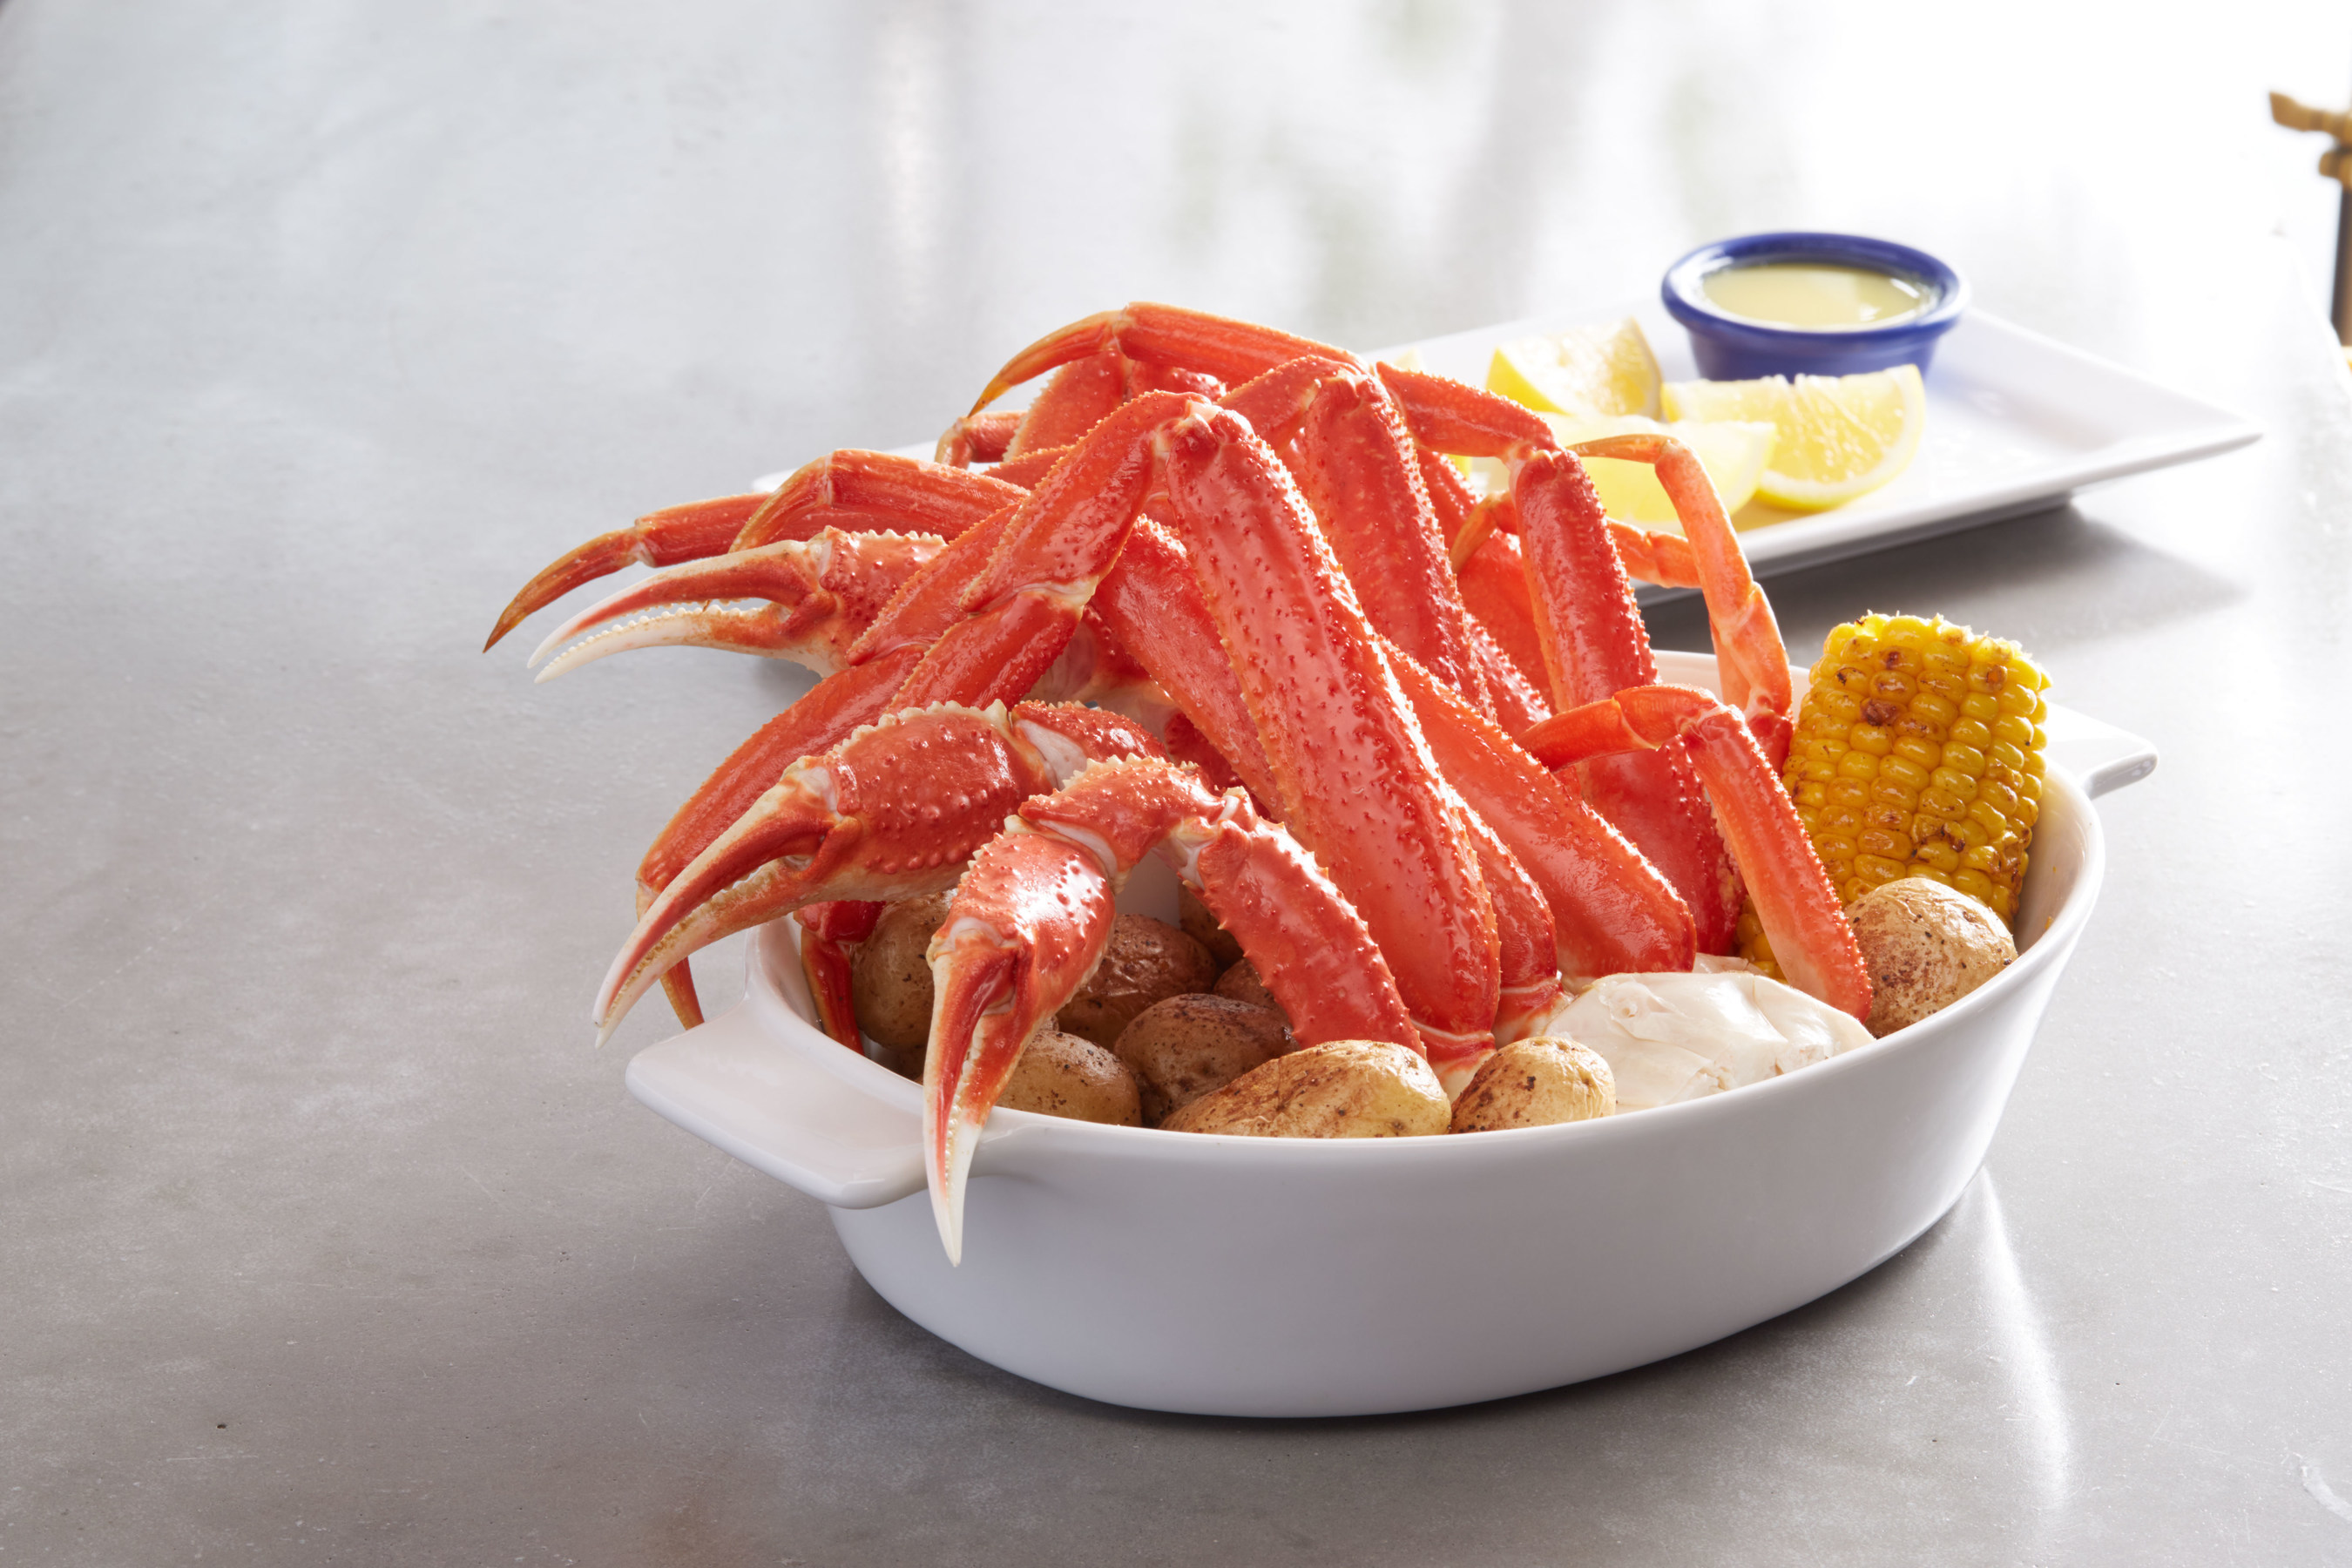 During Crabfest, guests can enjoy Red Lobster's NEW! Wild-Caught Crab Legs Dinner with the choice of a generous portion of three selections of wild-caught crab legs - Alaska Bairdi crab, North American snow crab or king crab.